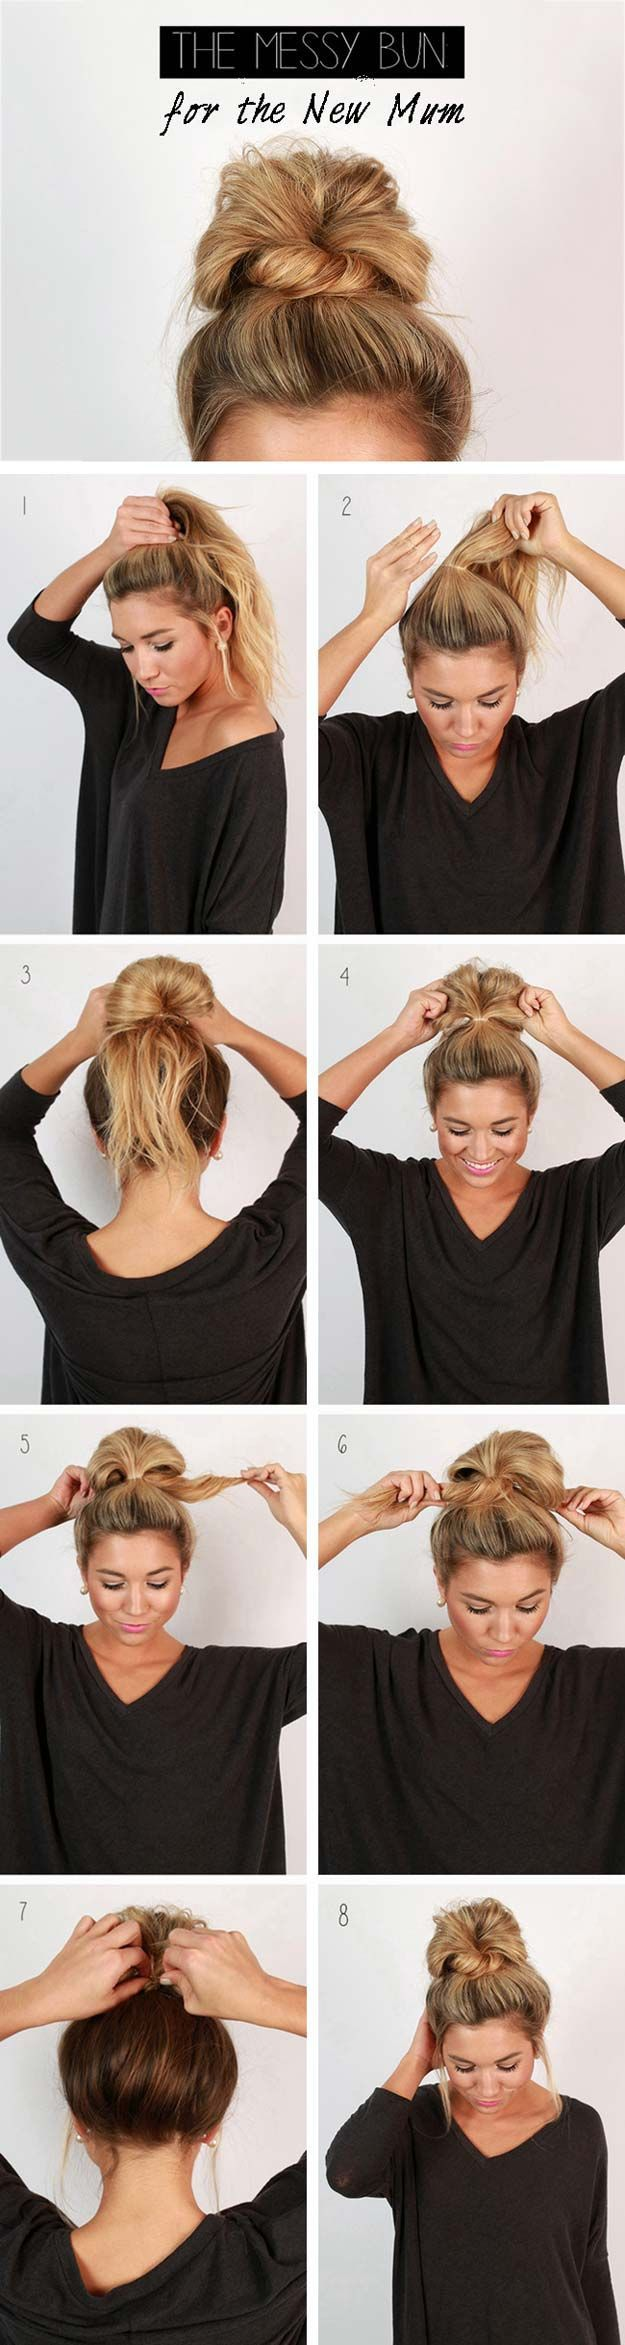 best 25+ lazy day hairstyles ideas on pinterest | lazy hair, lazy